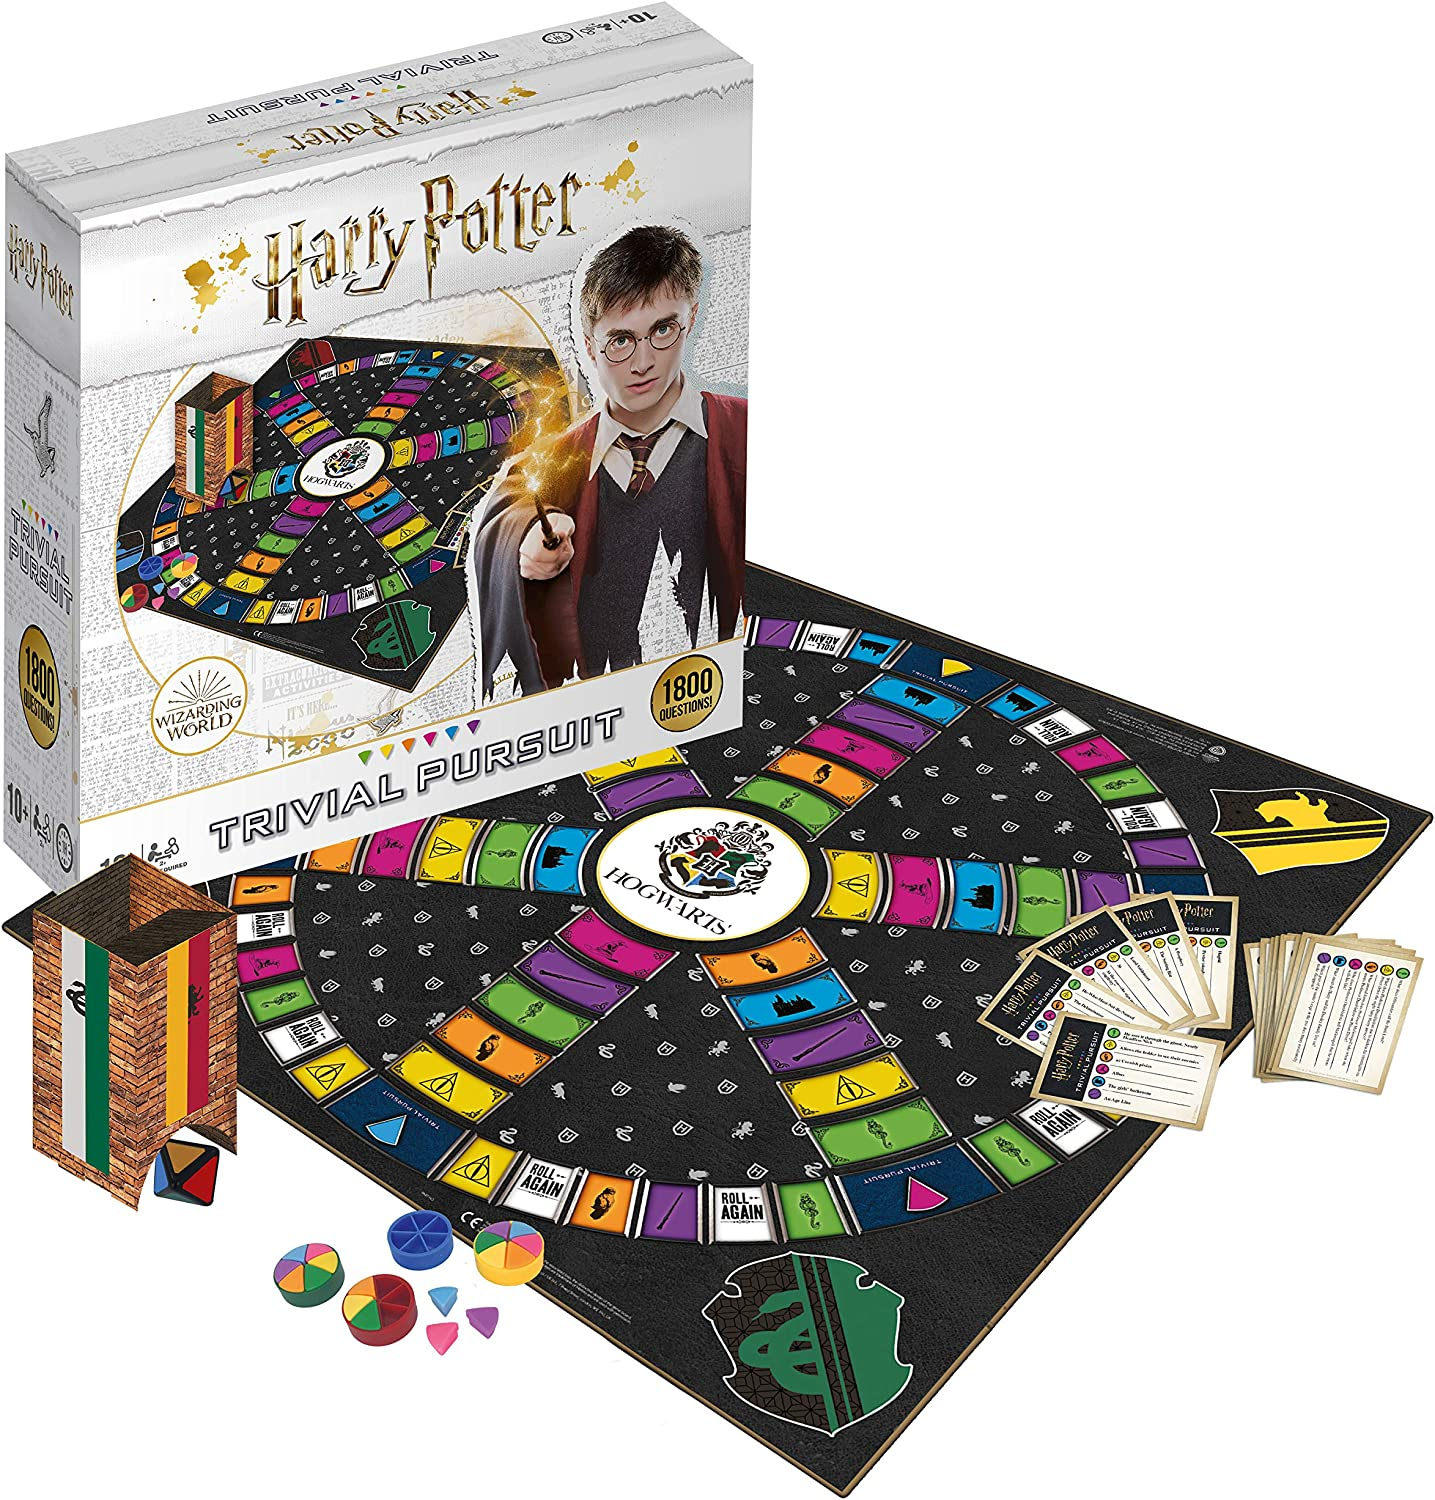 Winning Moves- Harry Potter Ultimate Trivial Pursuit, Color (033343), Inglés: Amazon.es: Juguetes y juegos